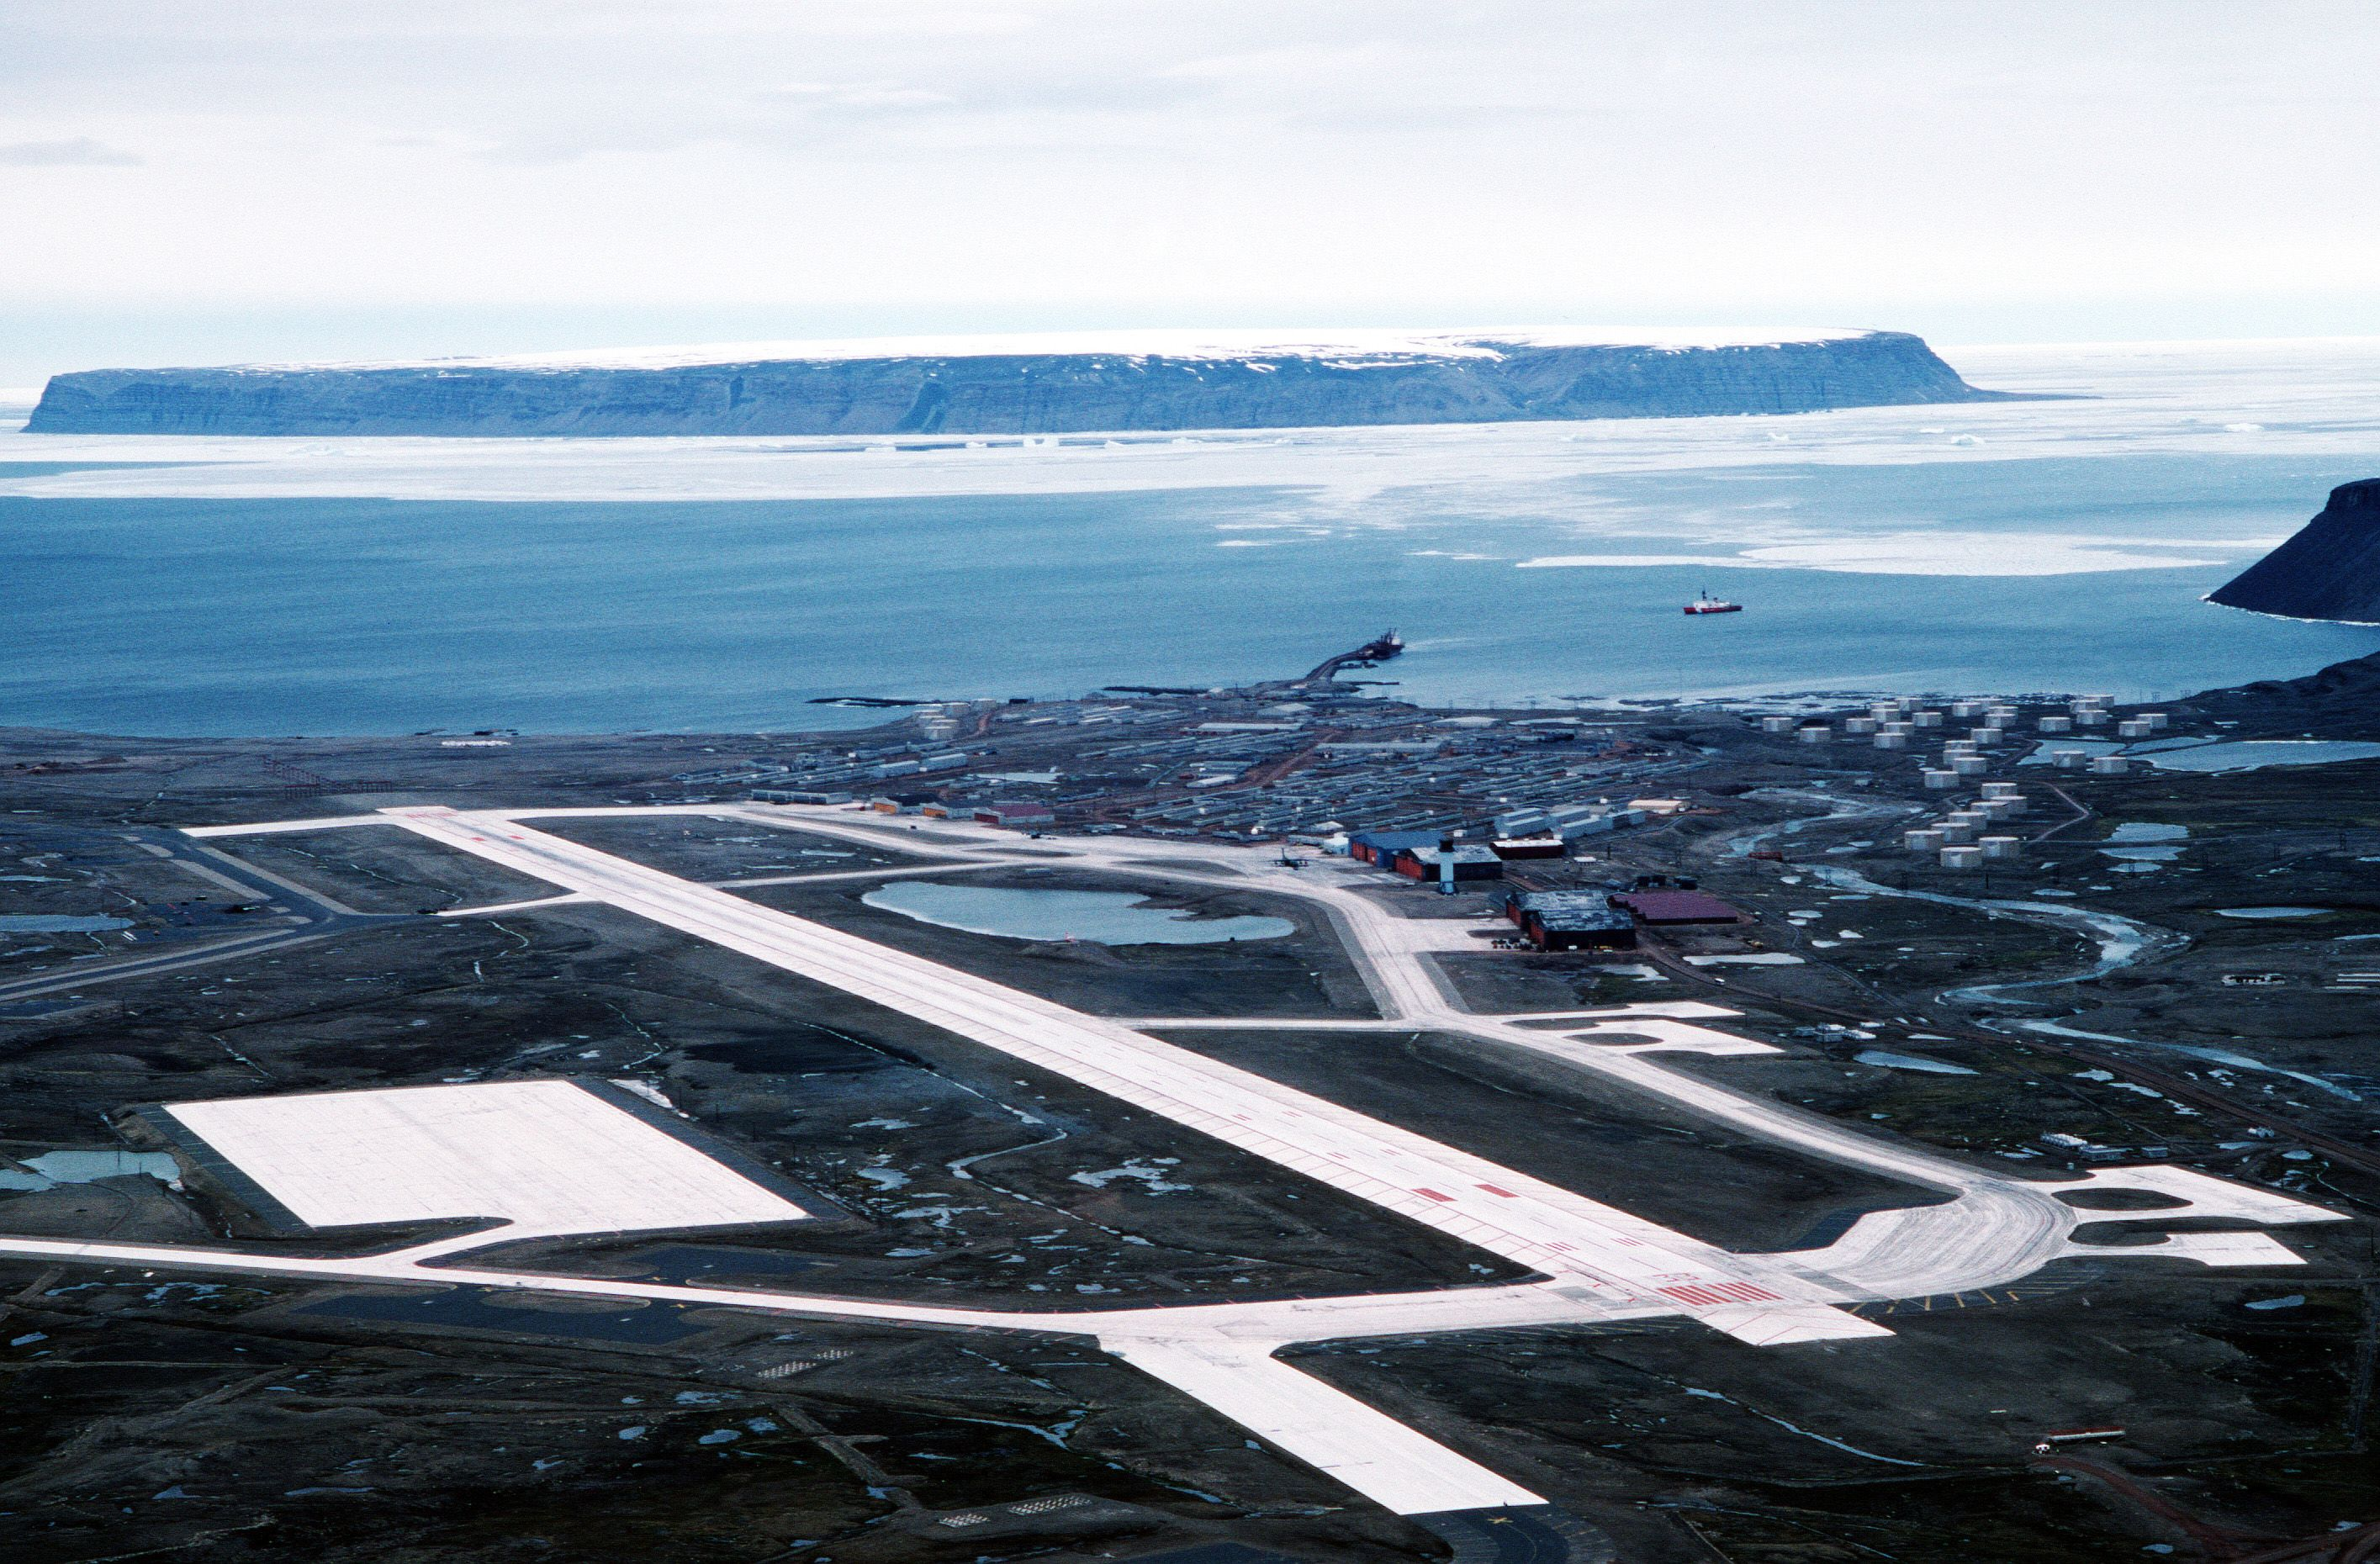 Thule Afb Greenland Places I Have Visited Naval Aviator